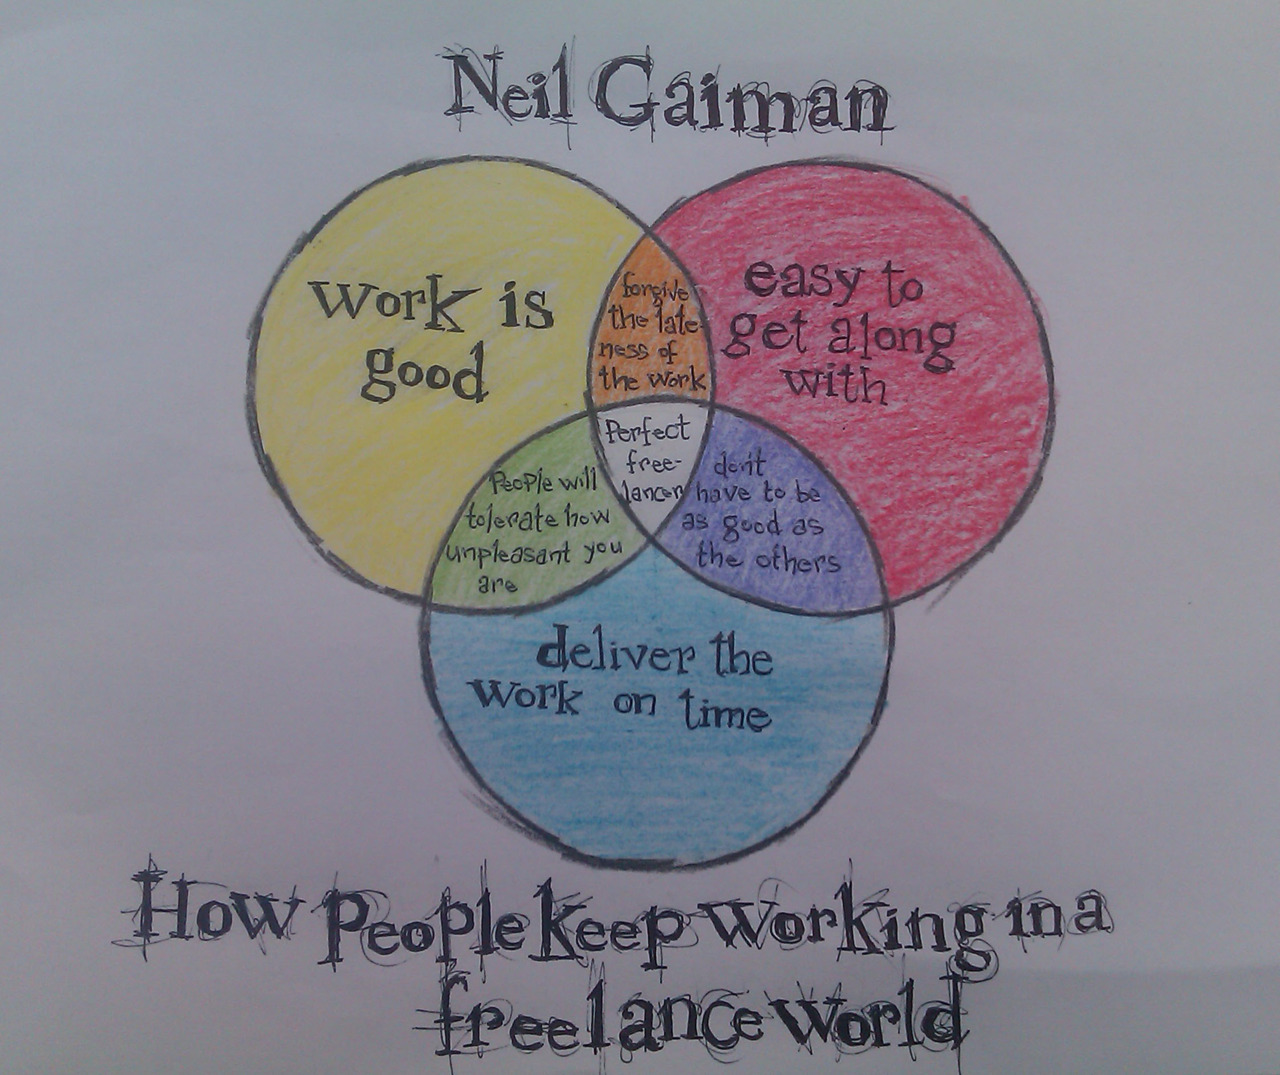 batsandbones:  My venn diagram of Neil Gaiman's advice for working freelance from this amazing speech http://vimeo.com/42372767